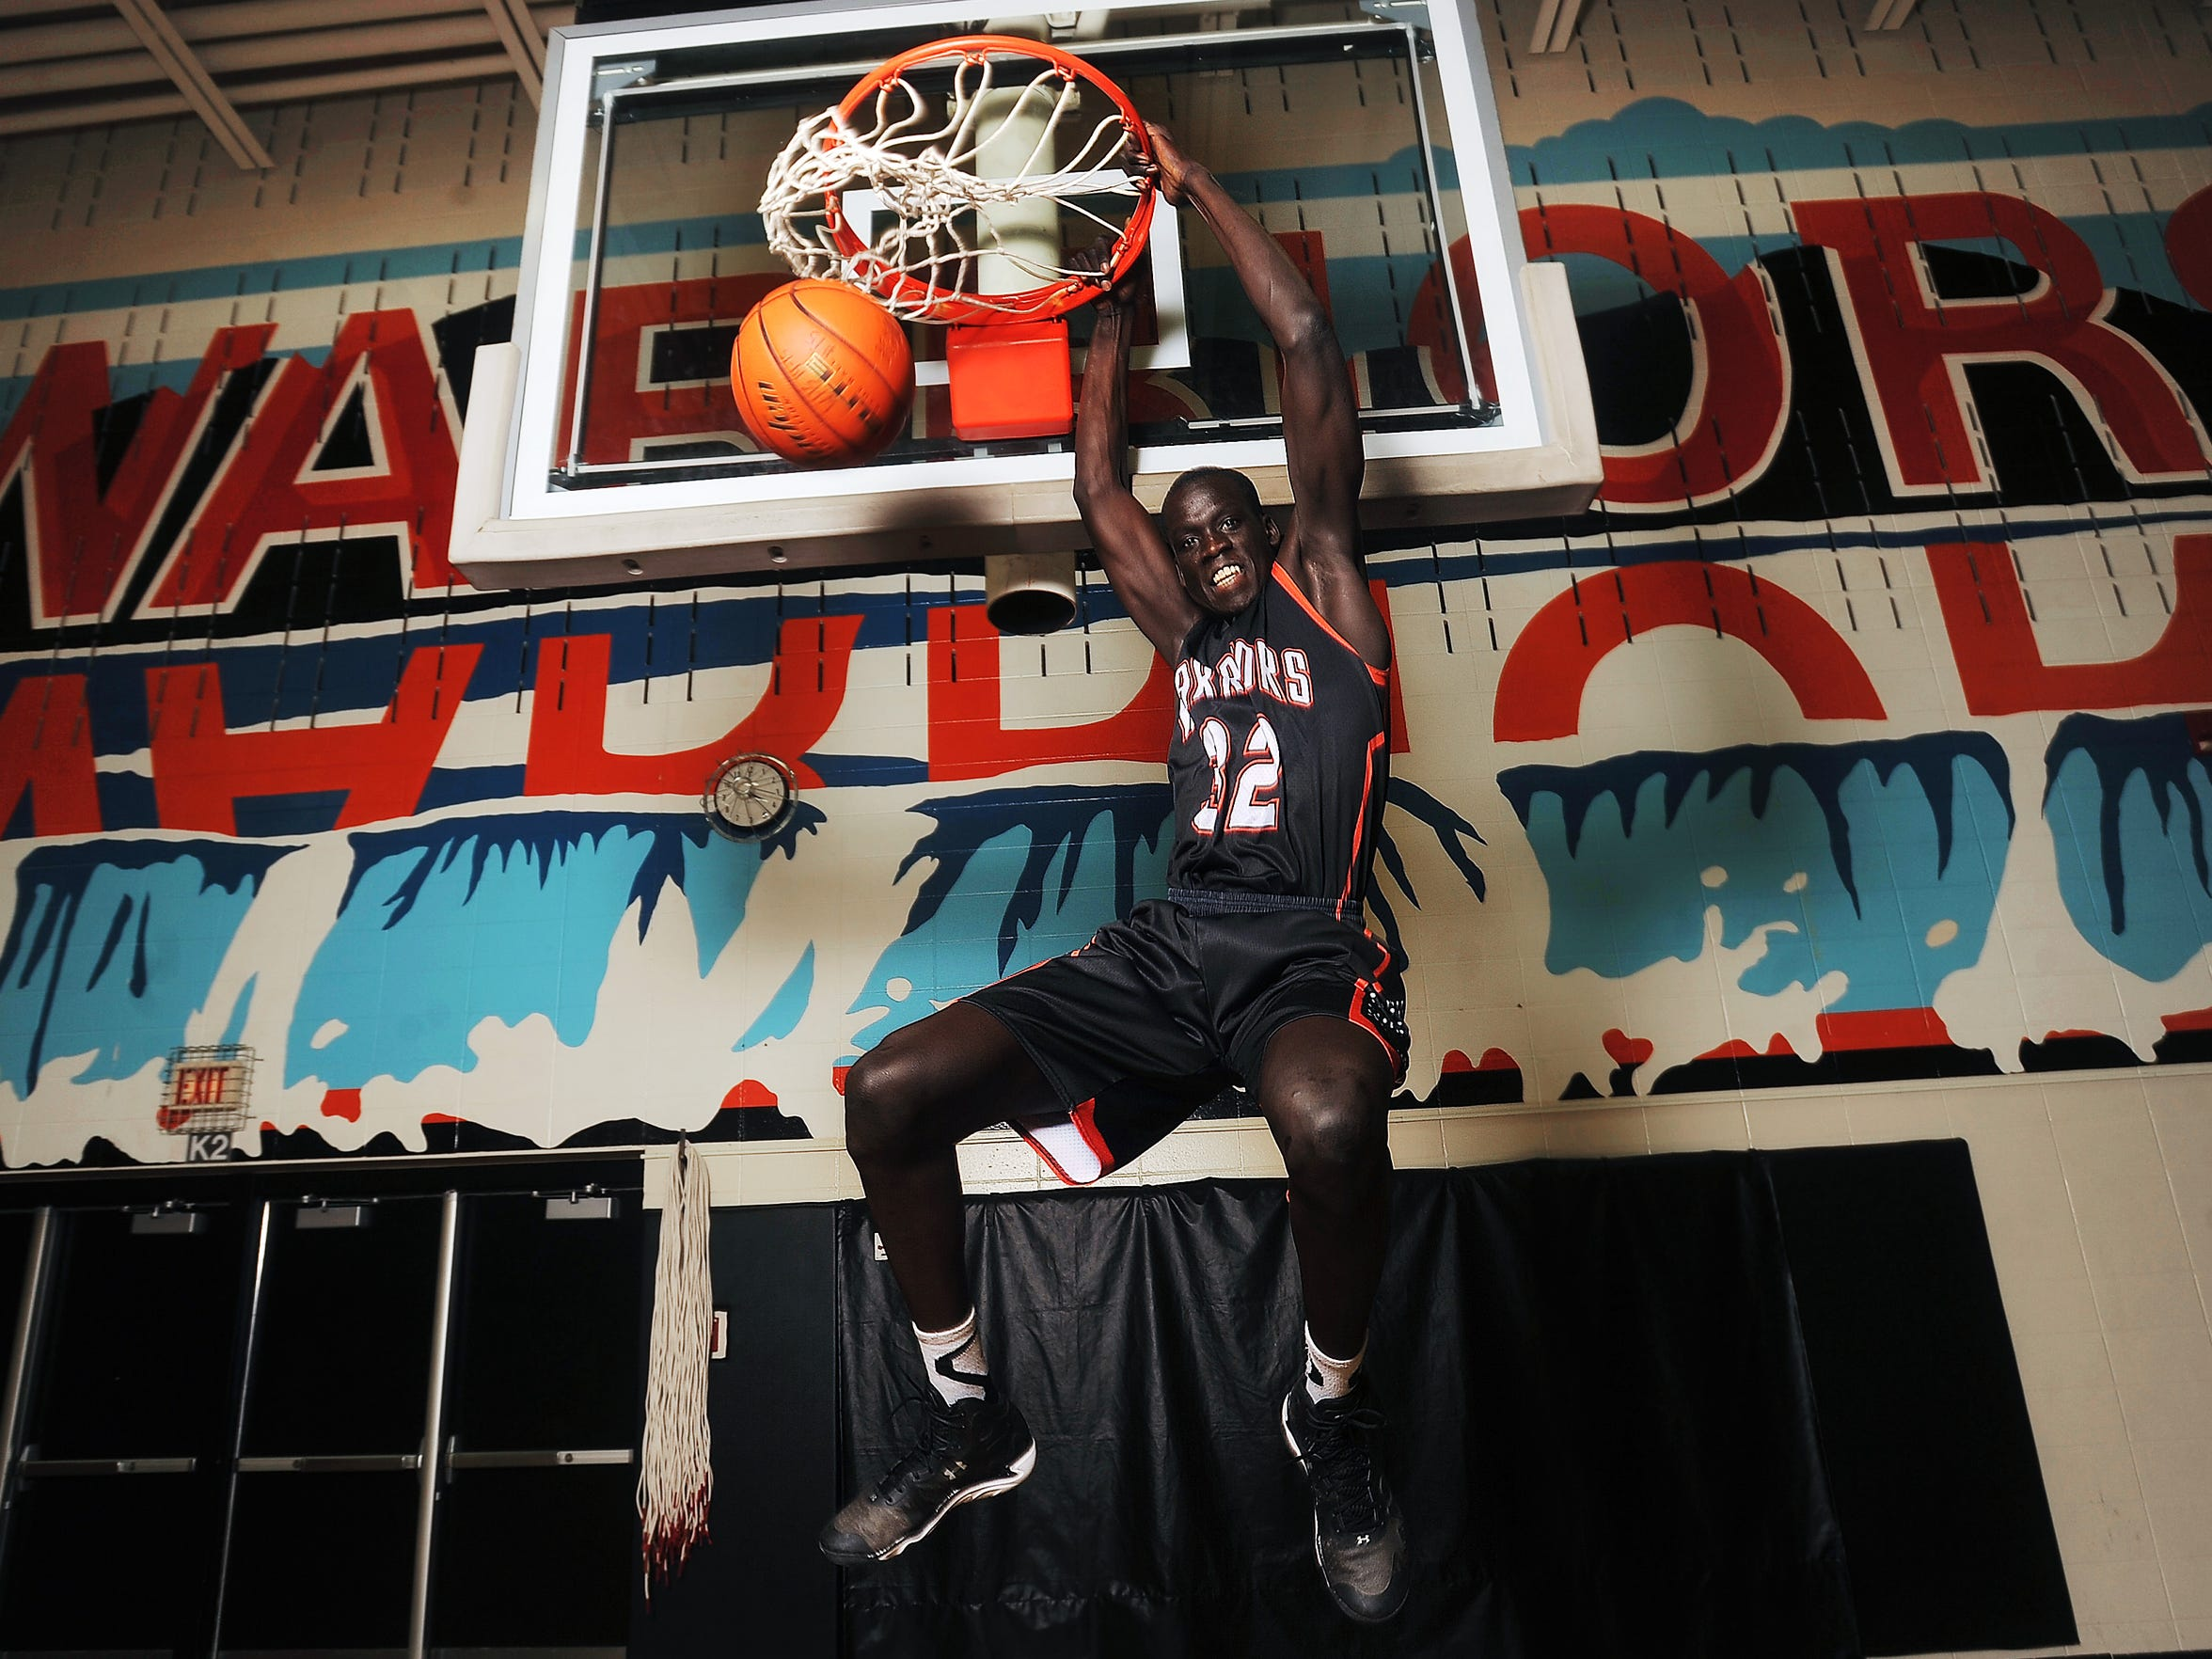 Deng Geu does his signature dunk at Washington High School on Friday, April 10, 2015.  Geu was the 2015 Argus Leader/Sanford Pentagon First Five Player of the Year.